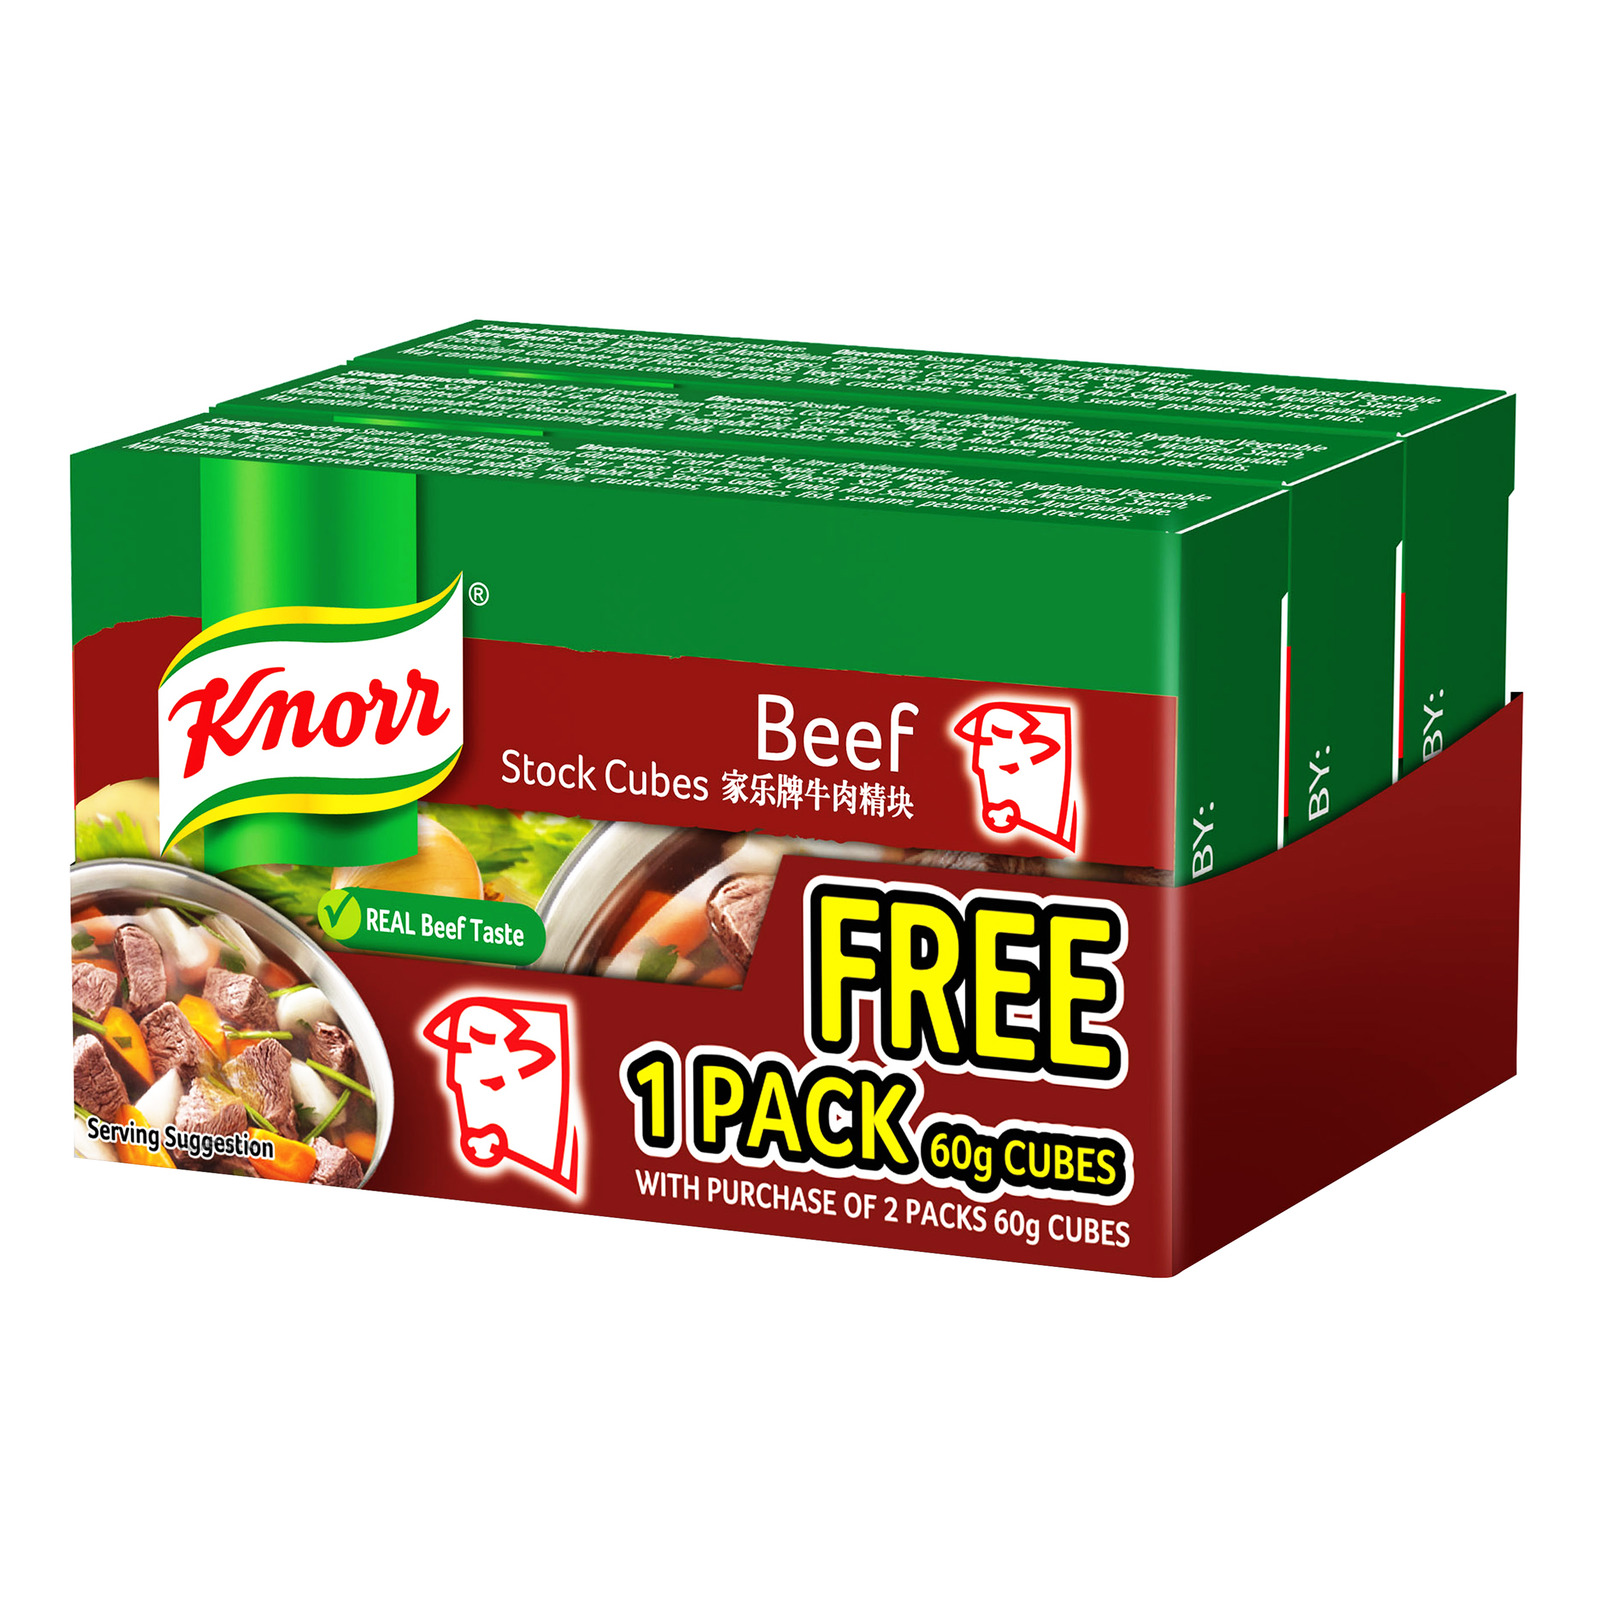 Knorr Stock Cubes - Beef